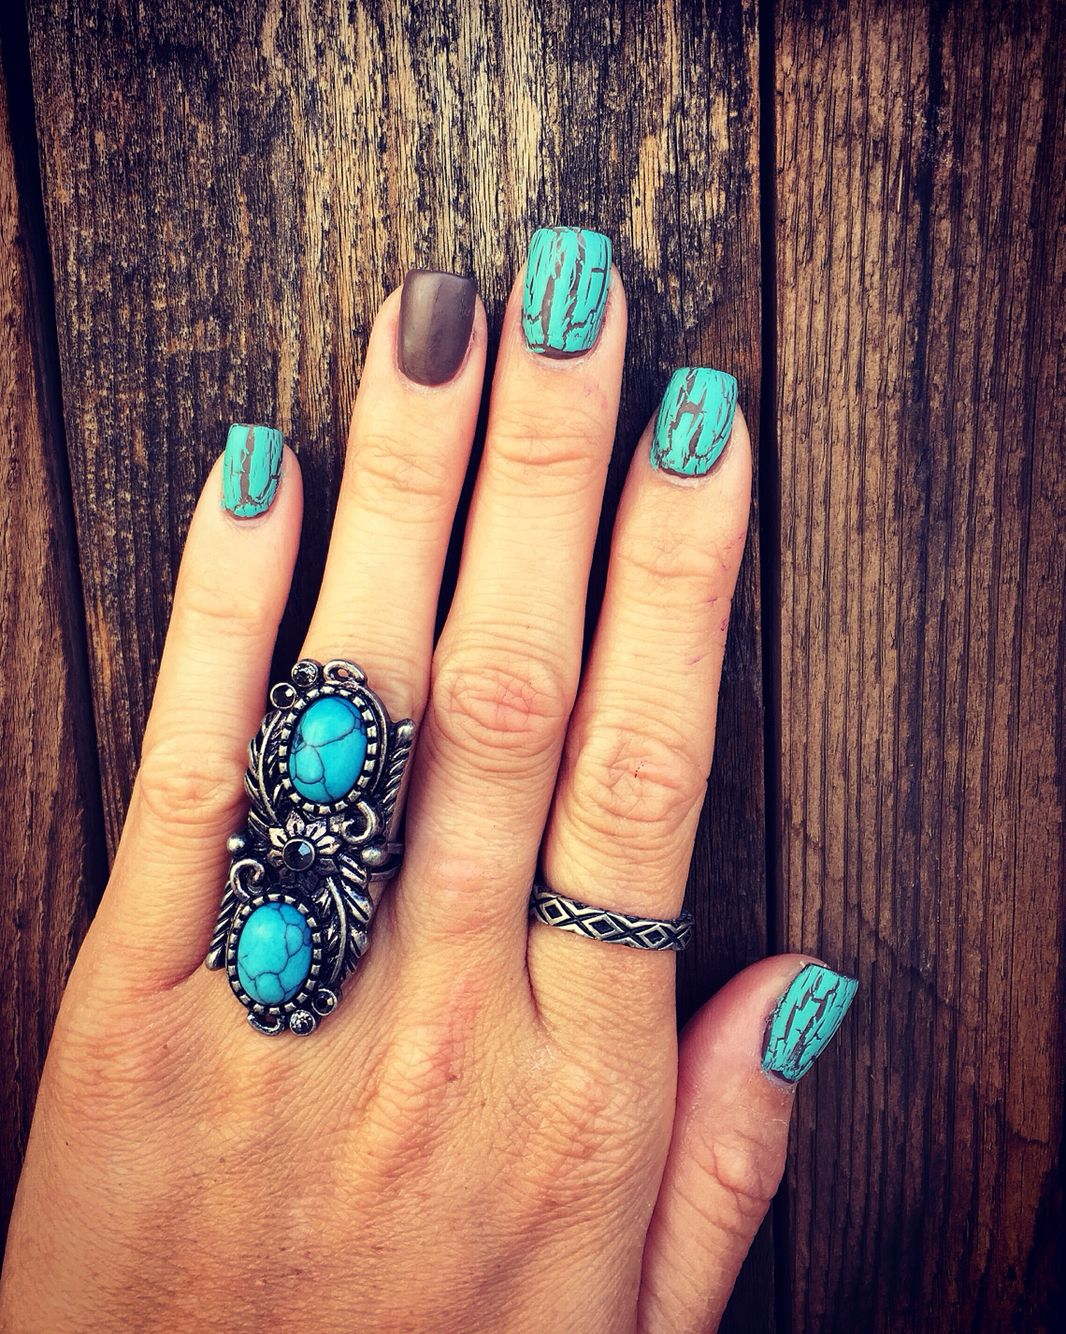 Matte brown and turquoise crackle nails I did. Kinda miss my